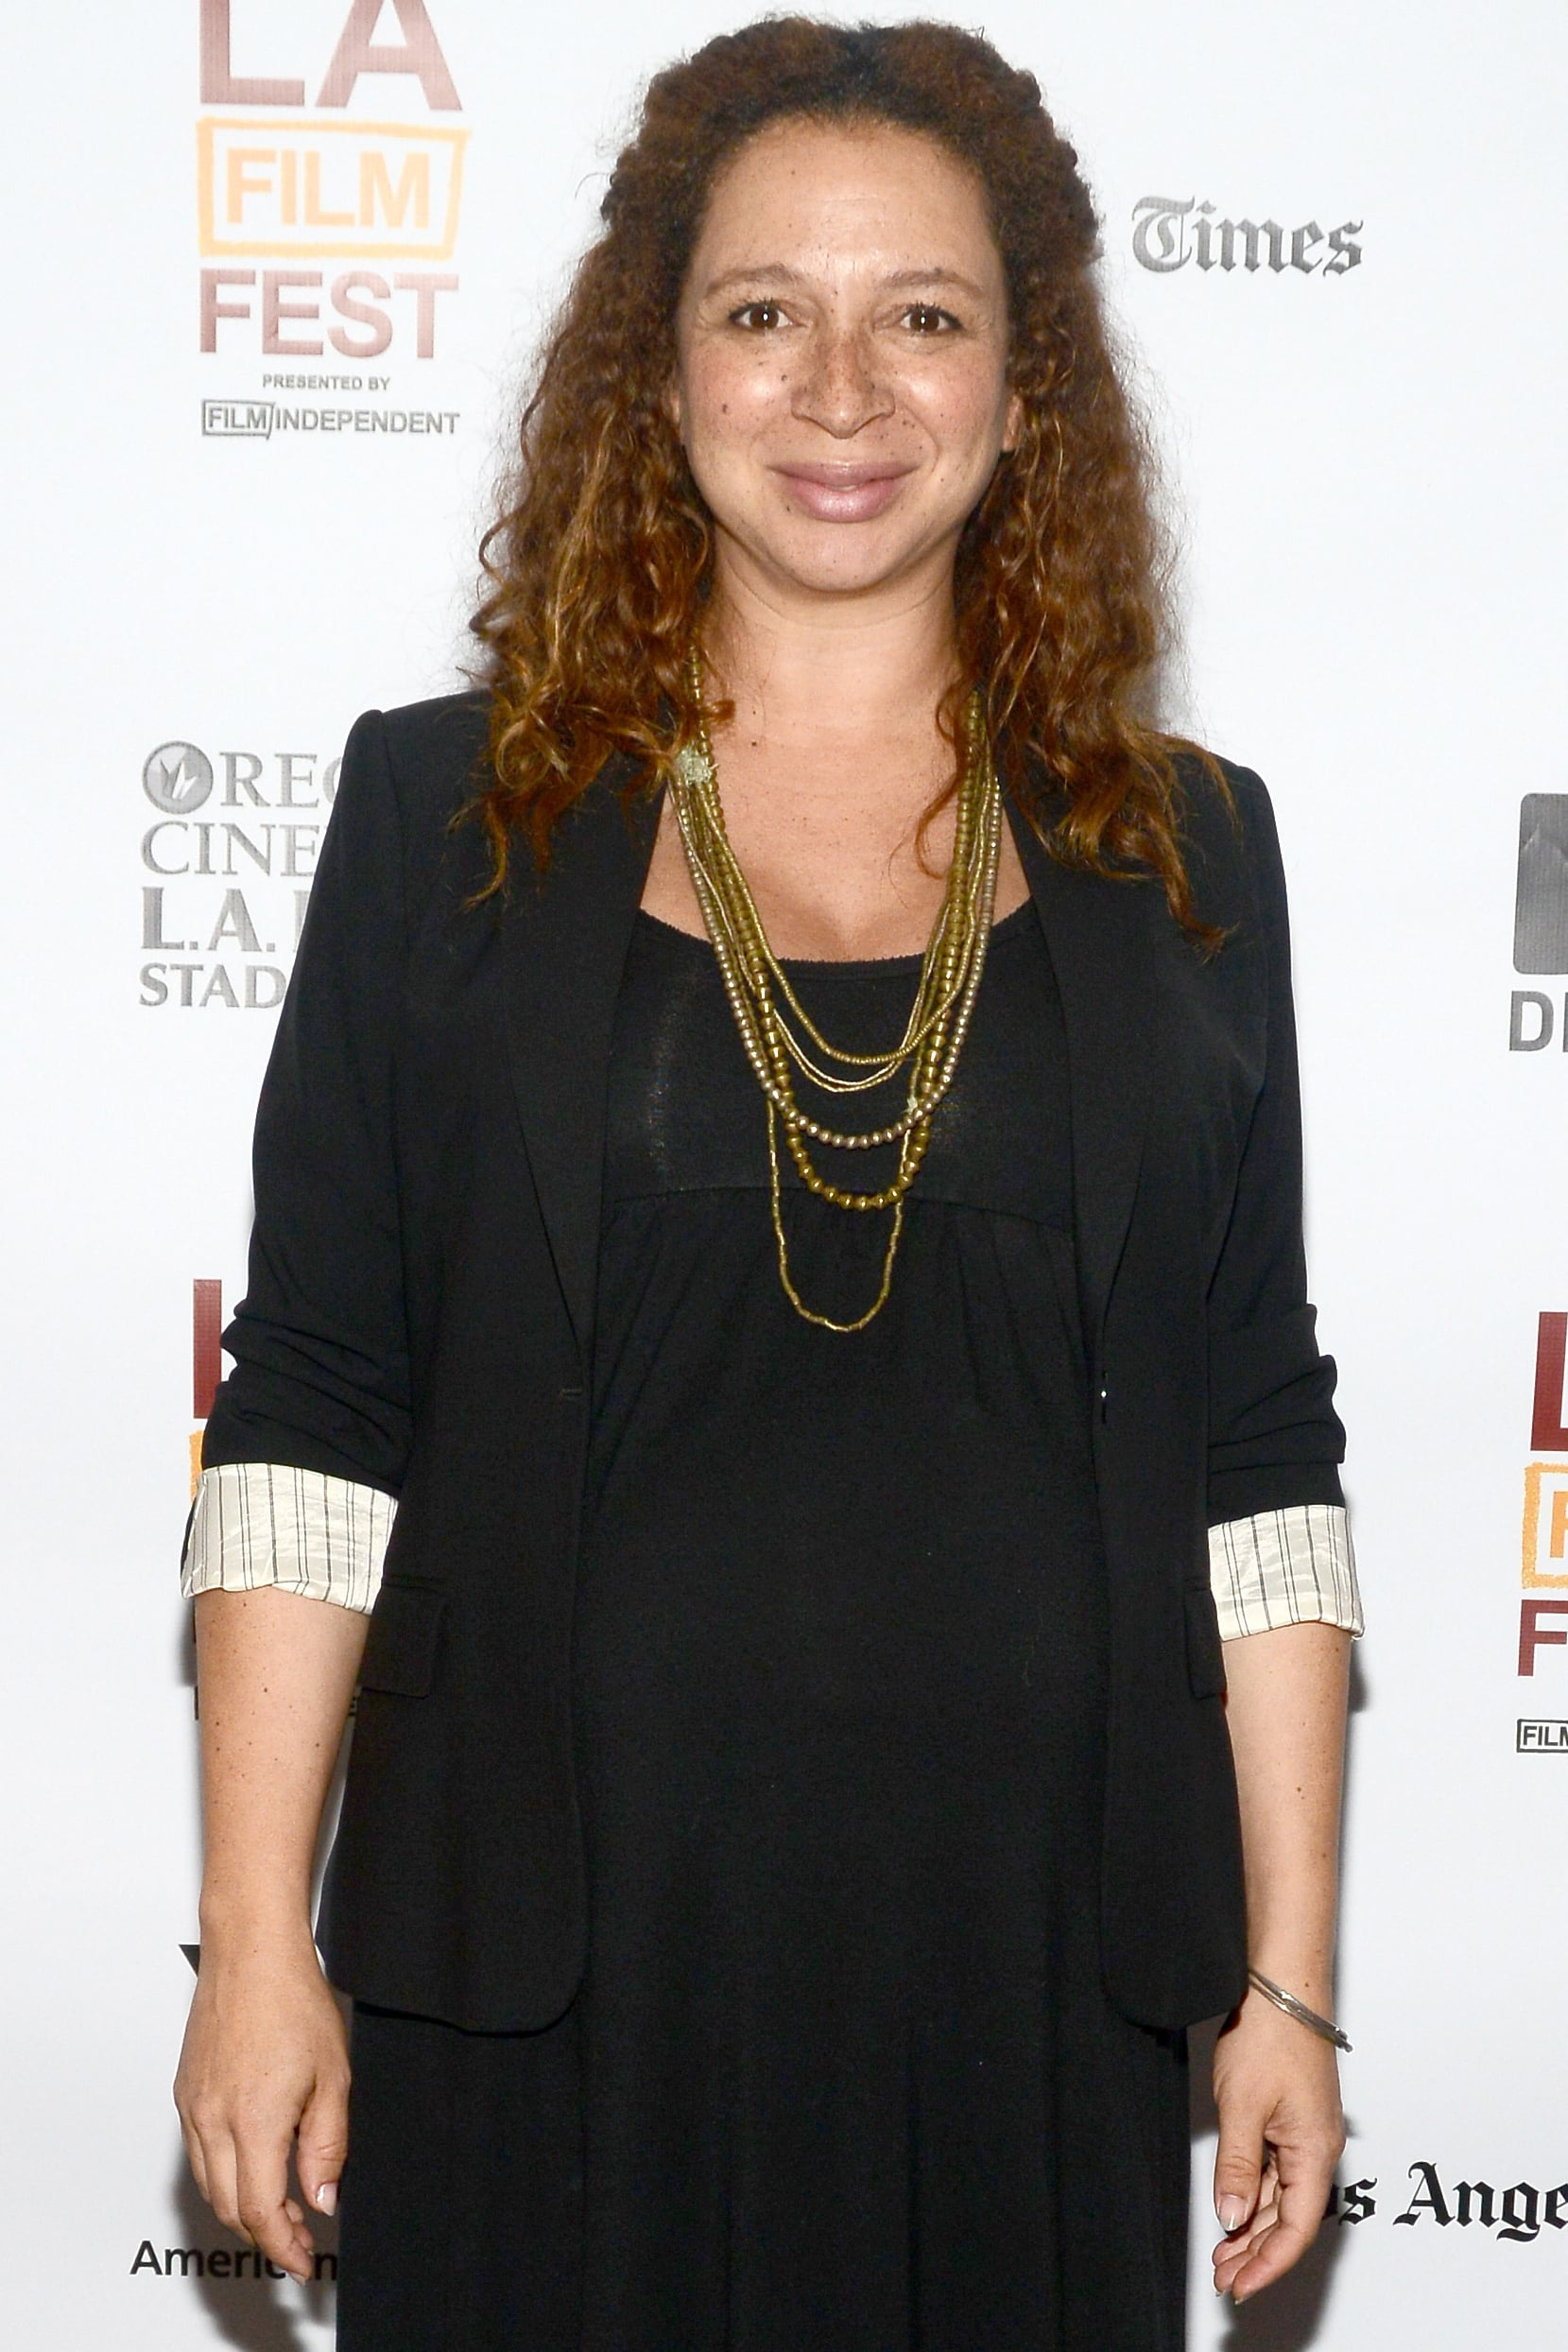 Maya Rudolph joined Big Hero 6 in a voice role. T.J. Miller and Jamie Chung will also be voicing characters in the supersecretive Disney film.